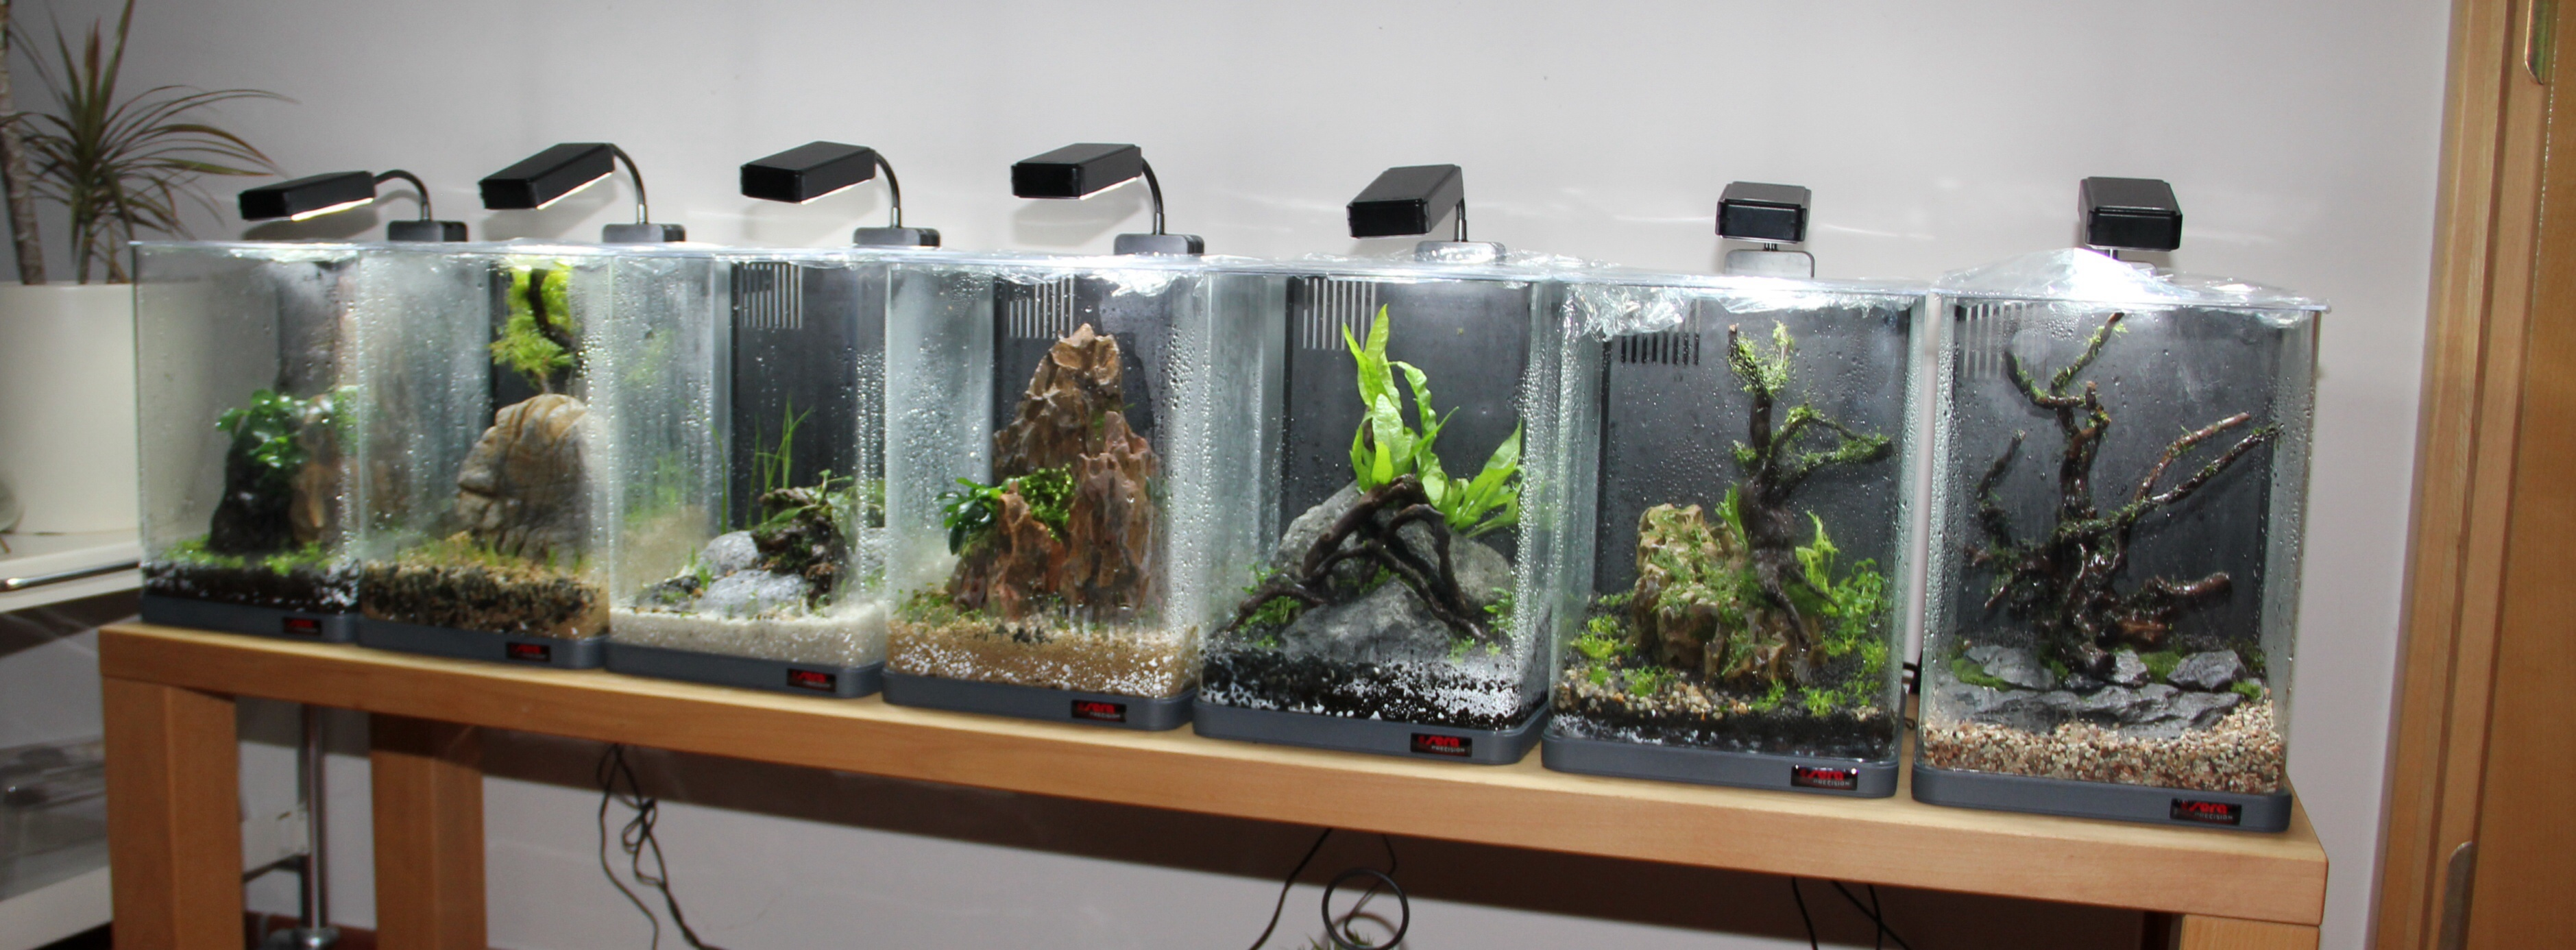 Meine Messe Zwerge - Off Topic - Aquascaping Forum